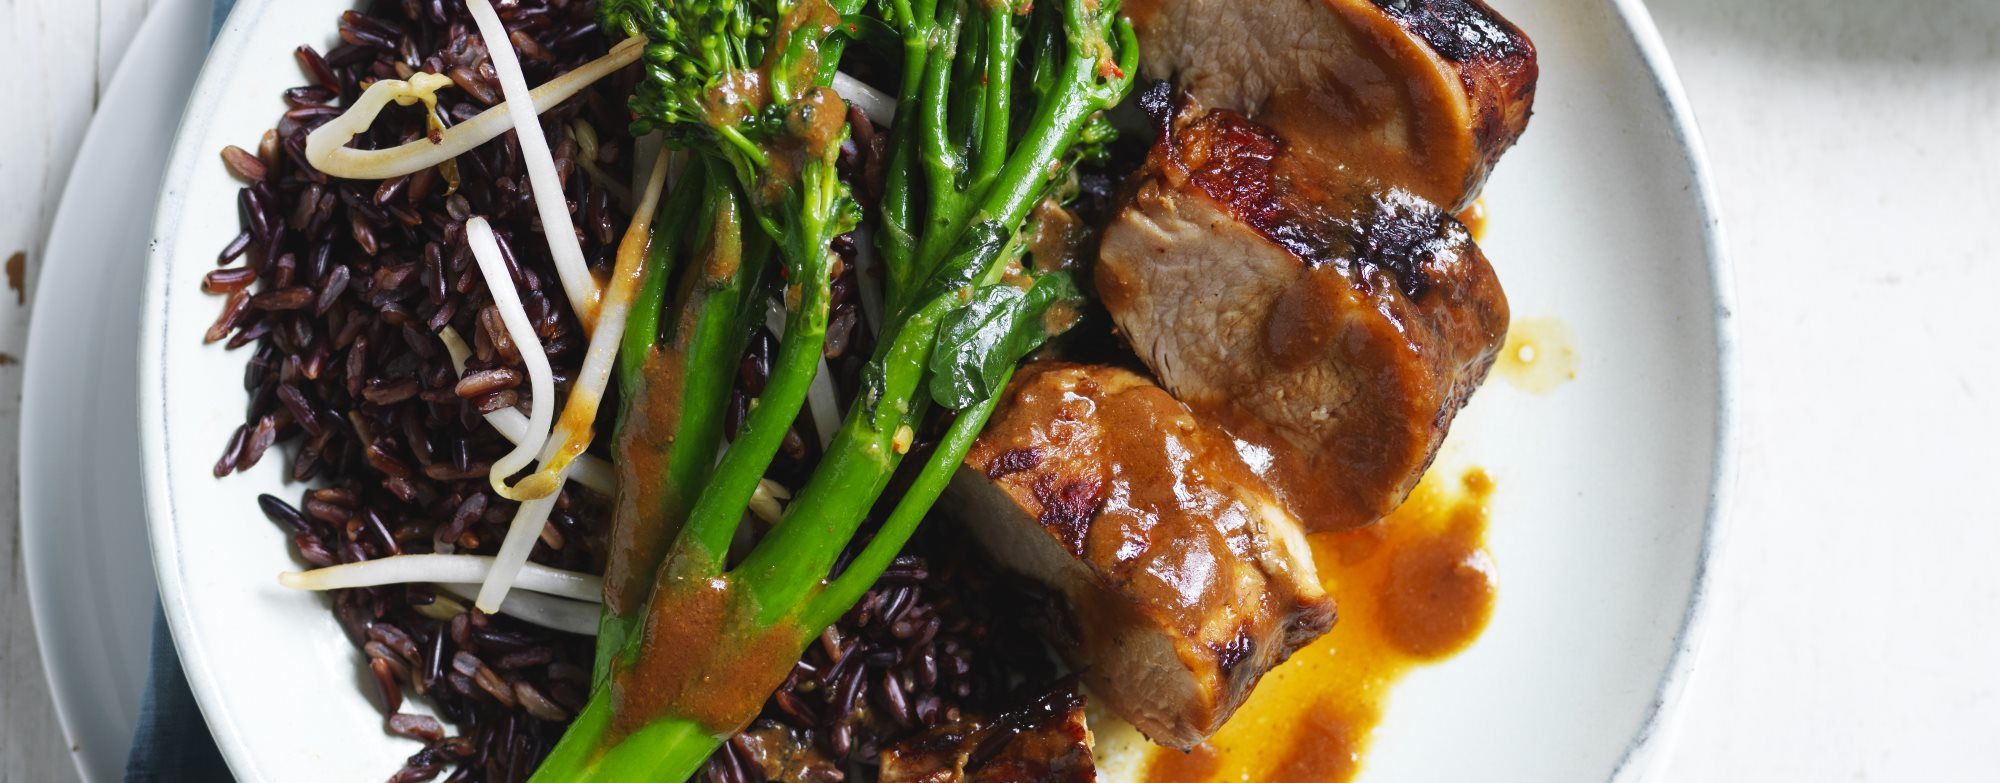 Miso Pork with Black Rice and Stir-Fried Greens